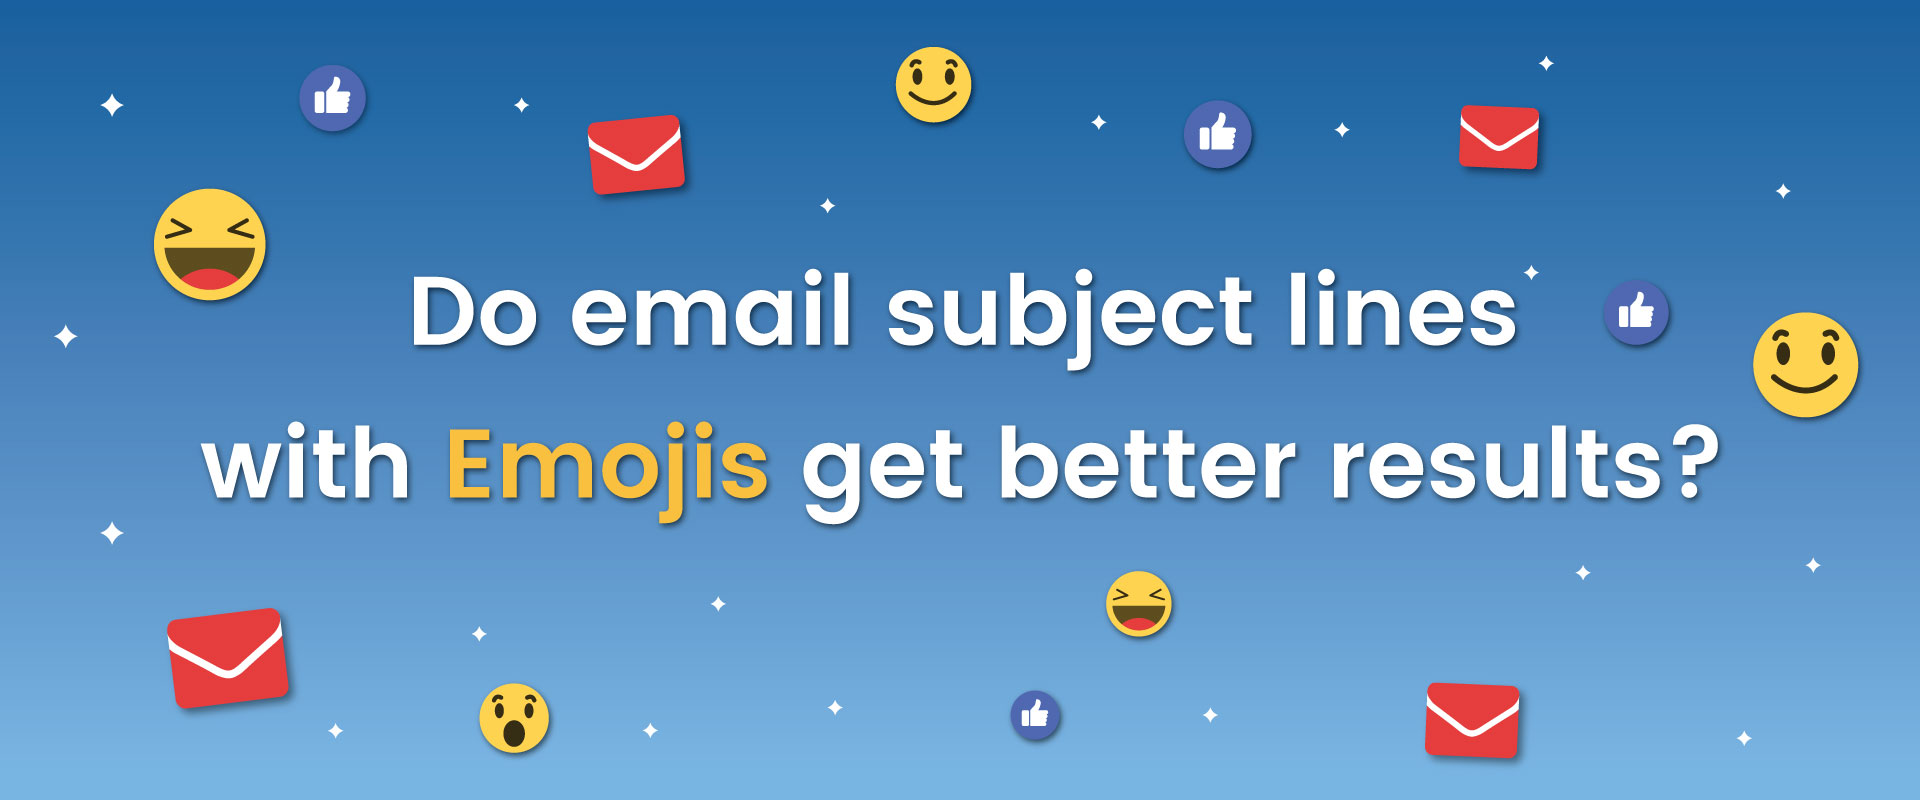 Do Email Subject Lines with Emojis get better Results